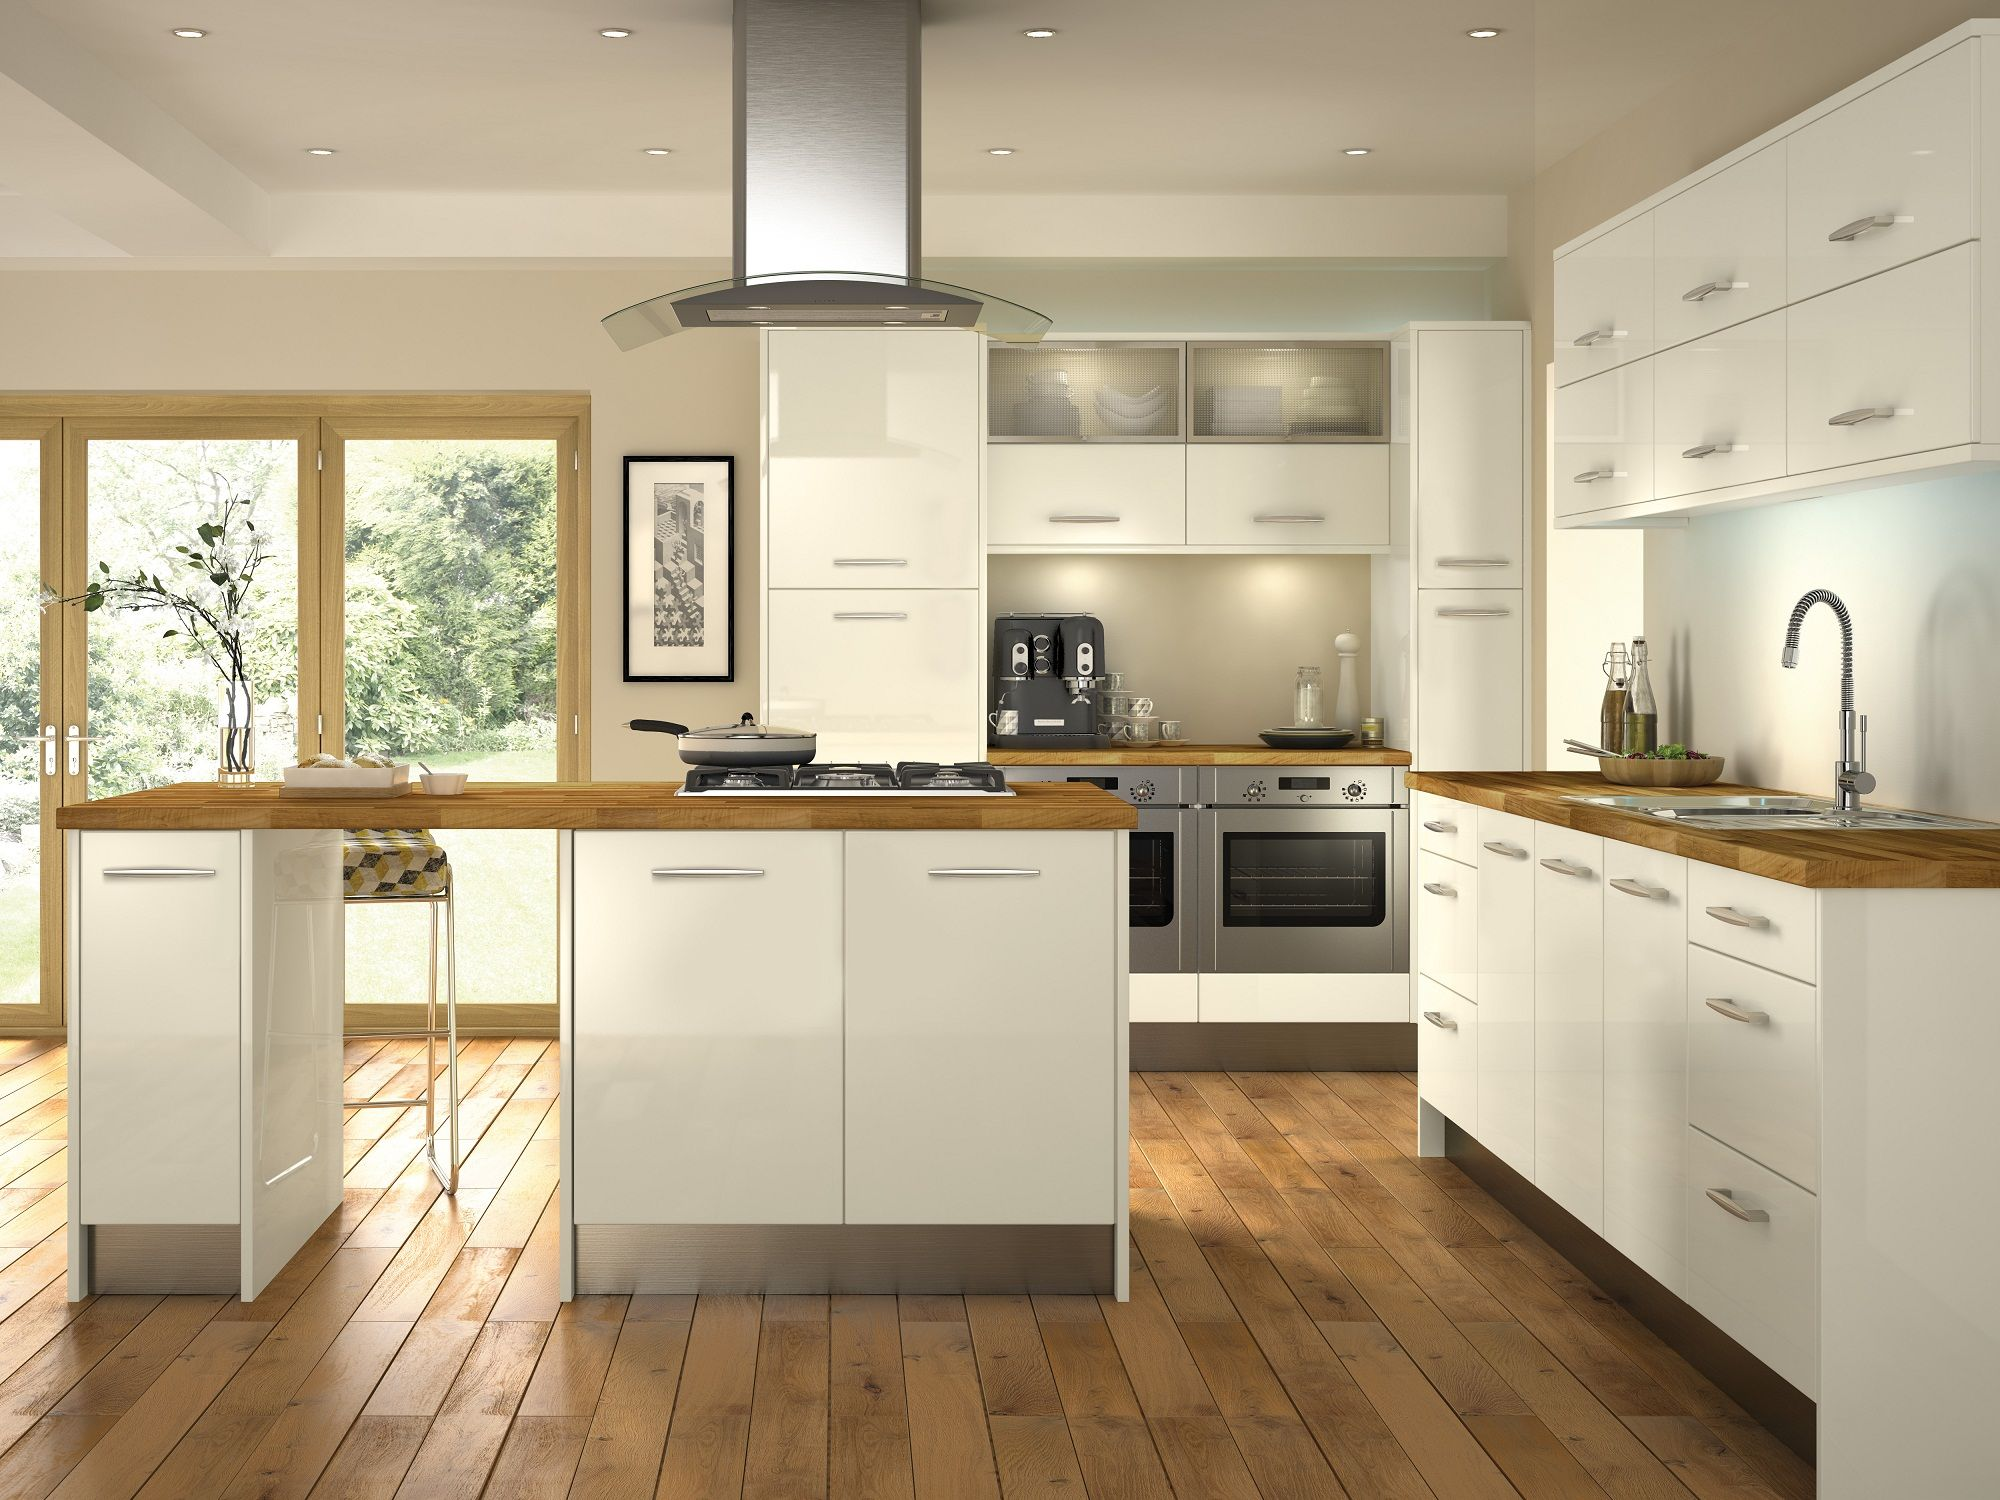 minoco ivory this gloss kitchen door would make any kitchen feel minoco ivory this gloss kitchen door would make any kitchen feel contemporary http